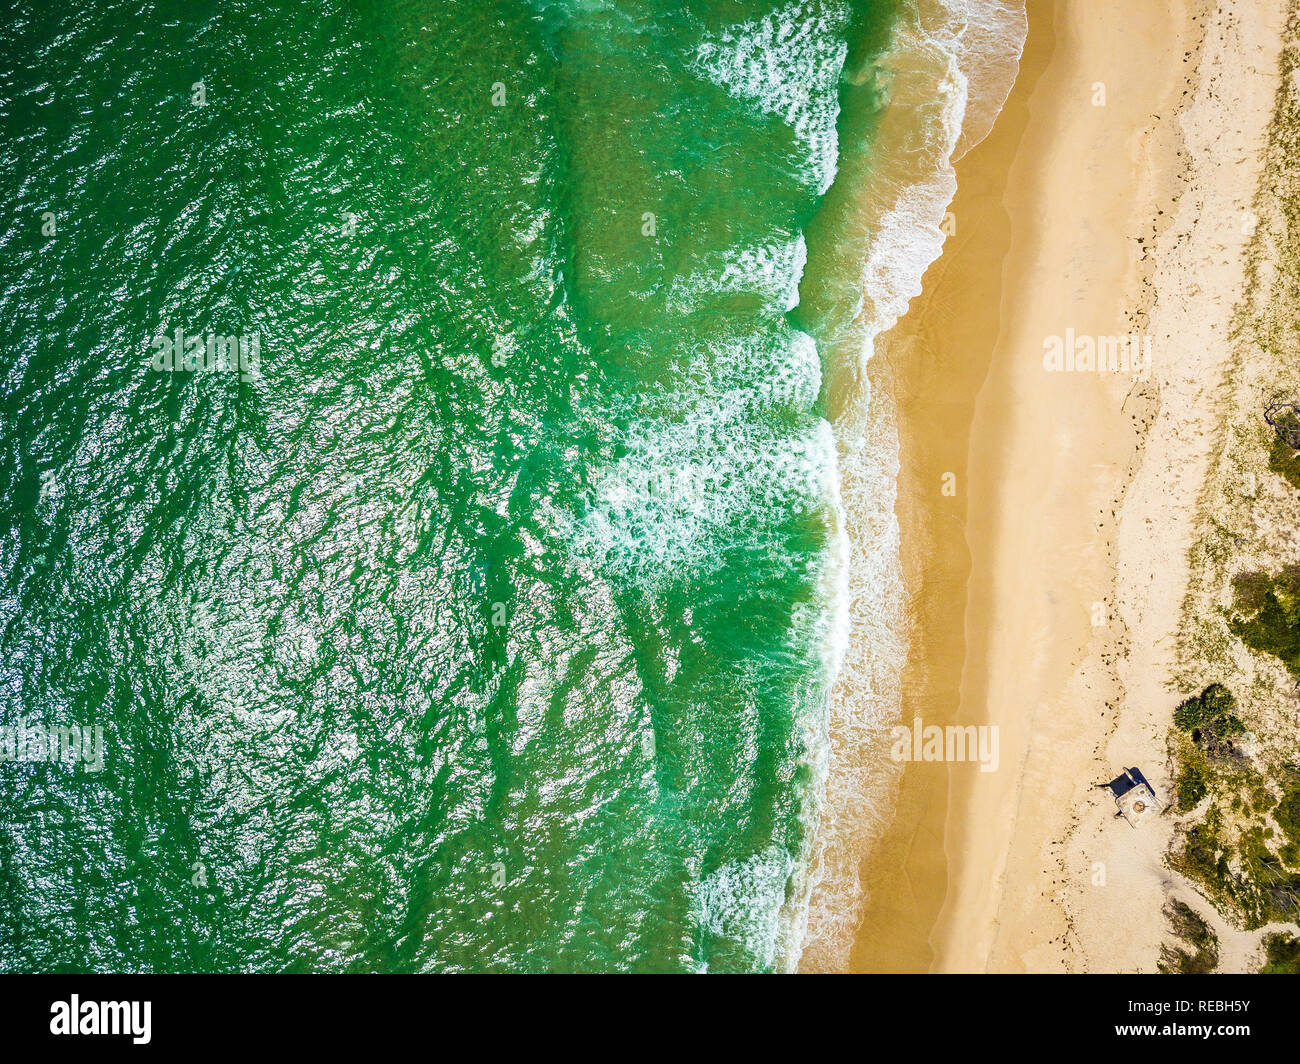 Aerial view of the beach at the Northern tip of Bribie Island in QLD, Australia - Stock Image